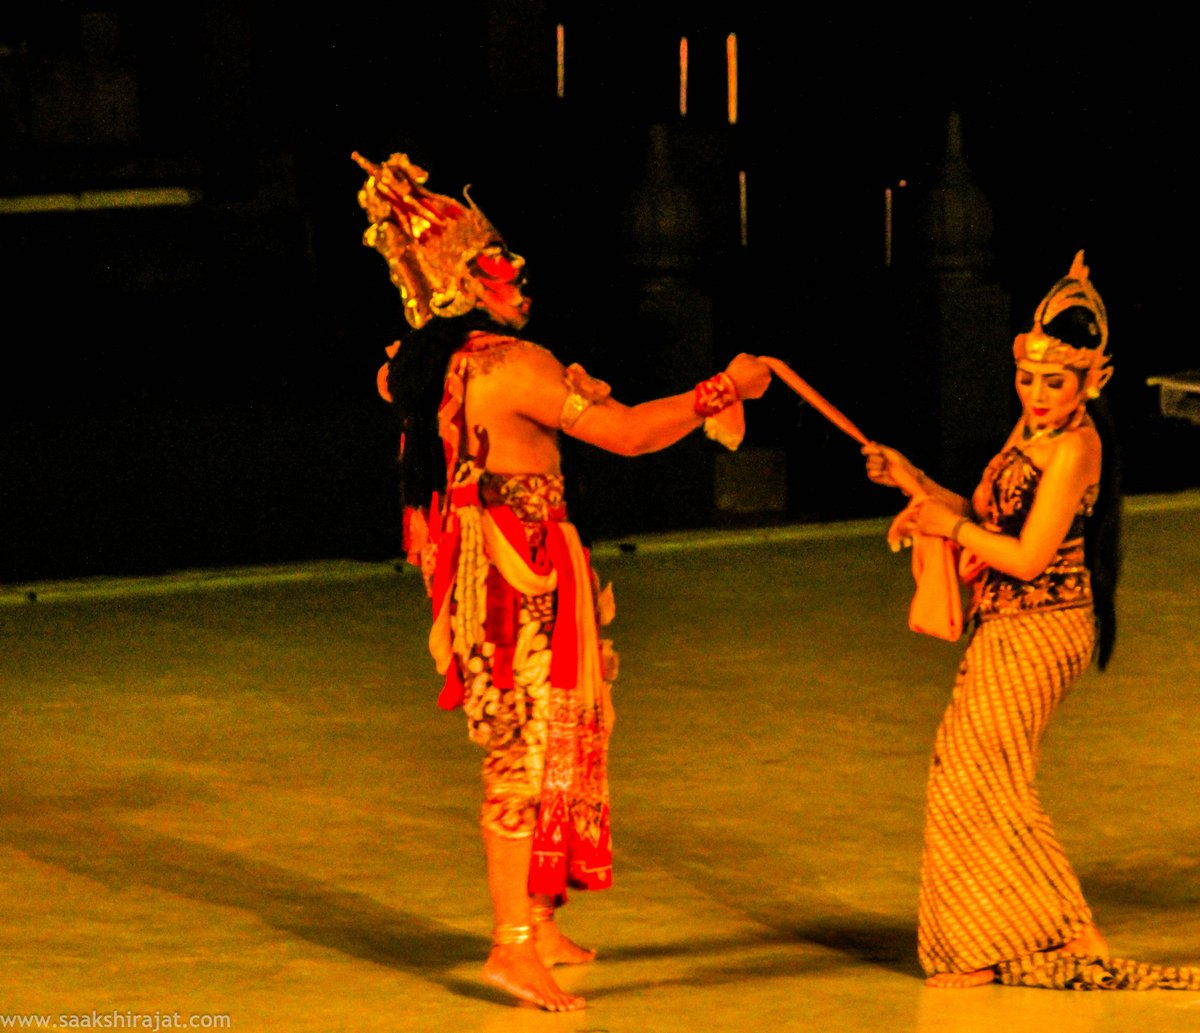 Watching #Ramayana Ballet against the backdrop of white lit #Prambanan Temple will remain as my most vivid memory of #Yogyakarta. Plan your trip with the complete guide -  http:// bit.ly/2zTCWwW  &nbsp;   #wonderfulindonesia #indonesiatourism #ttot #travelblogger #travel<br>http://pic.twitter.com/7fc5WHxQeN